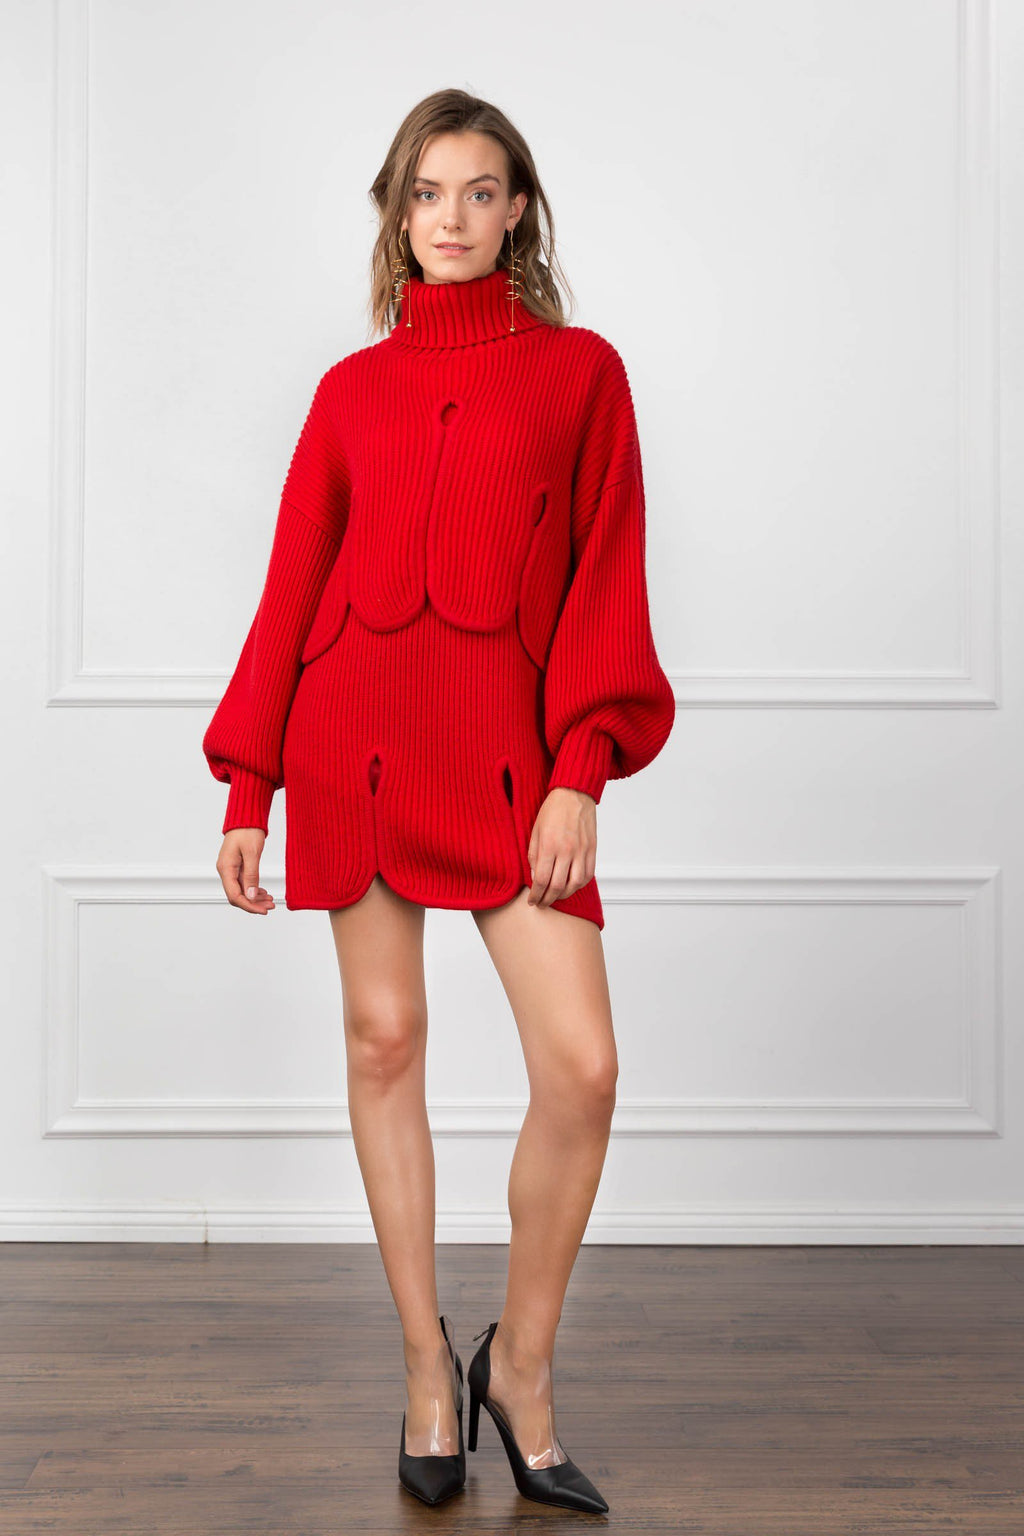 Dorothy Scarlet Sweater in Knitwear by J.ING - an L.A based women's fashion line